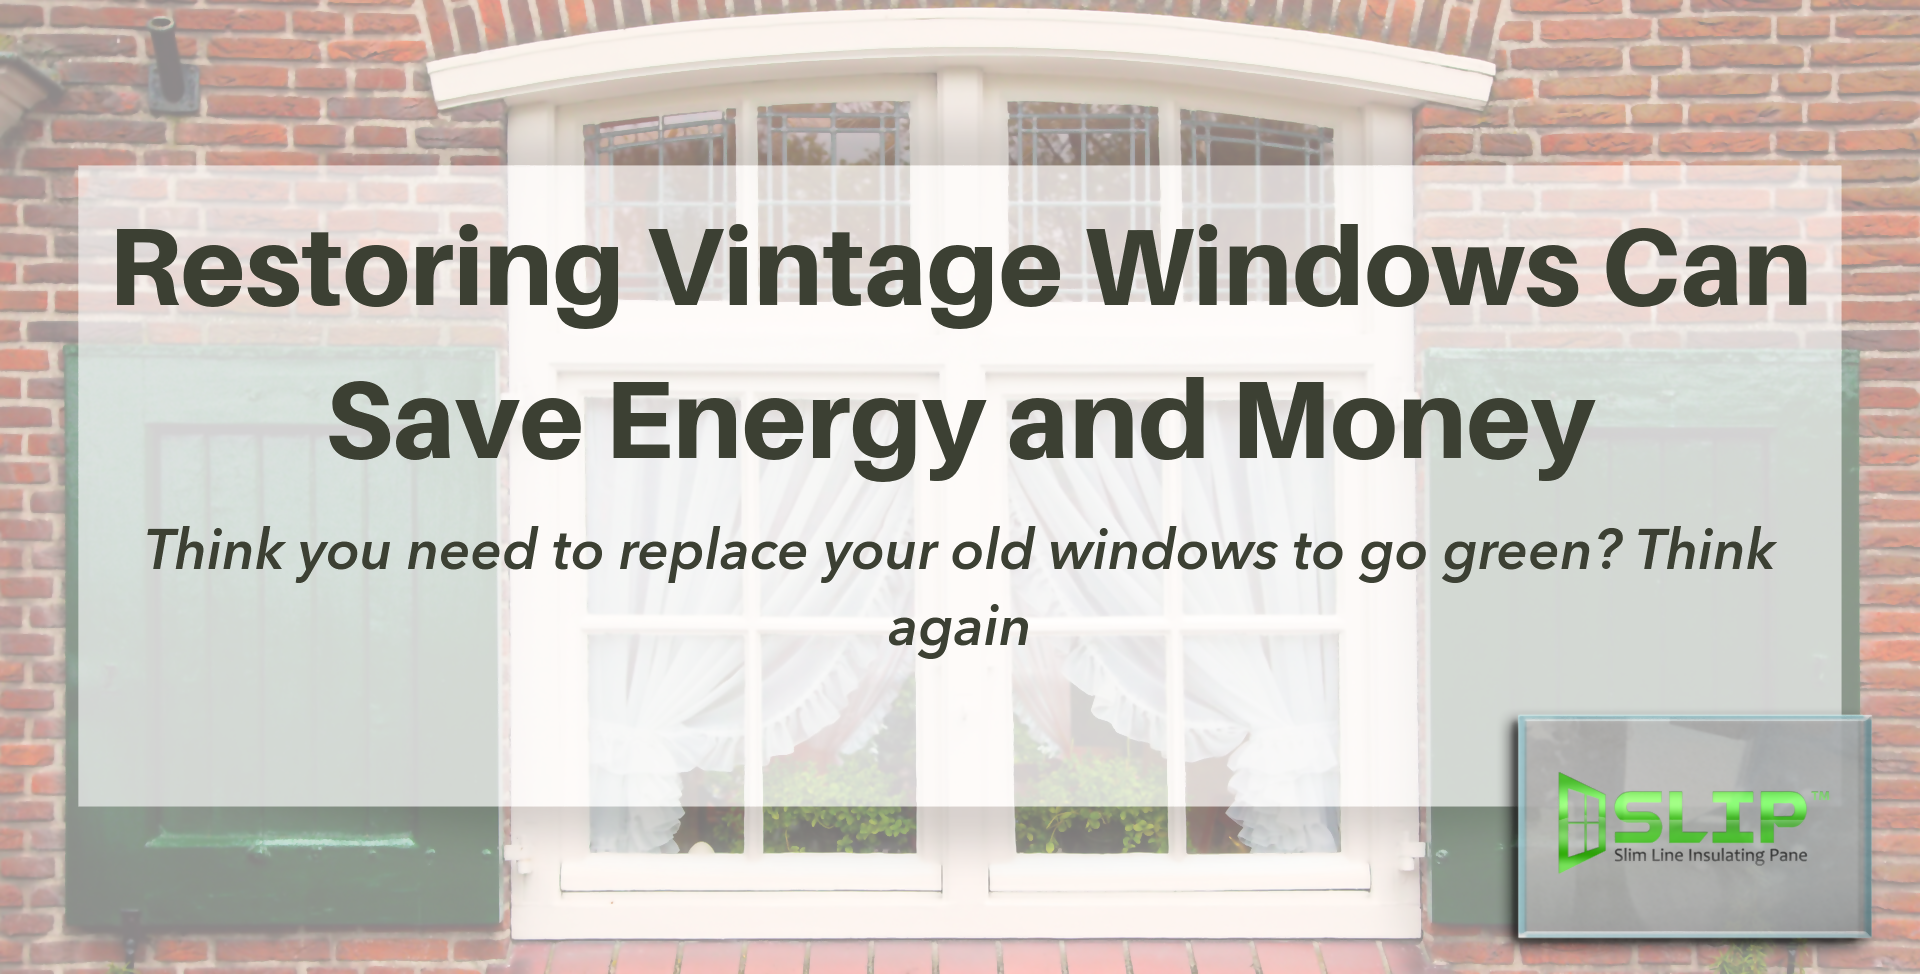 Go Green With Window Restoration